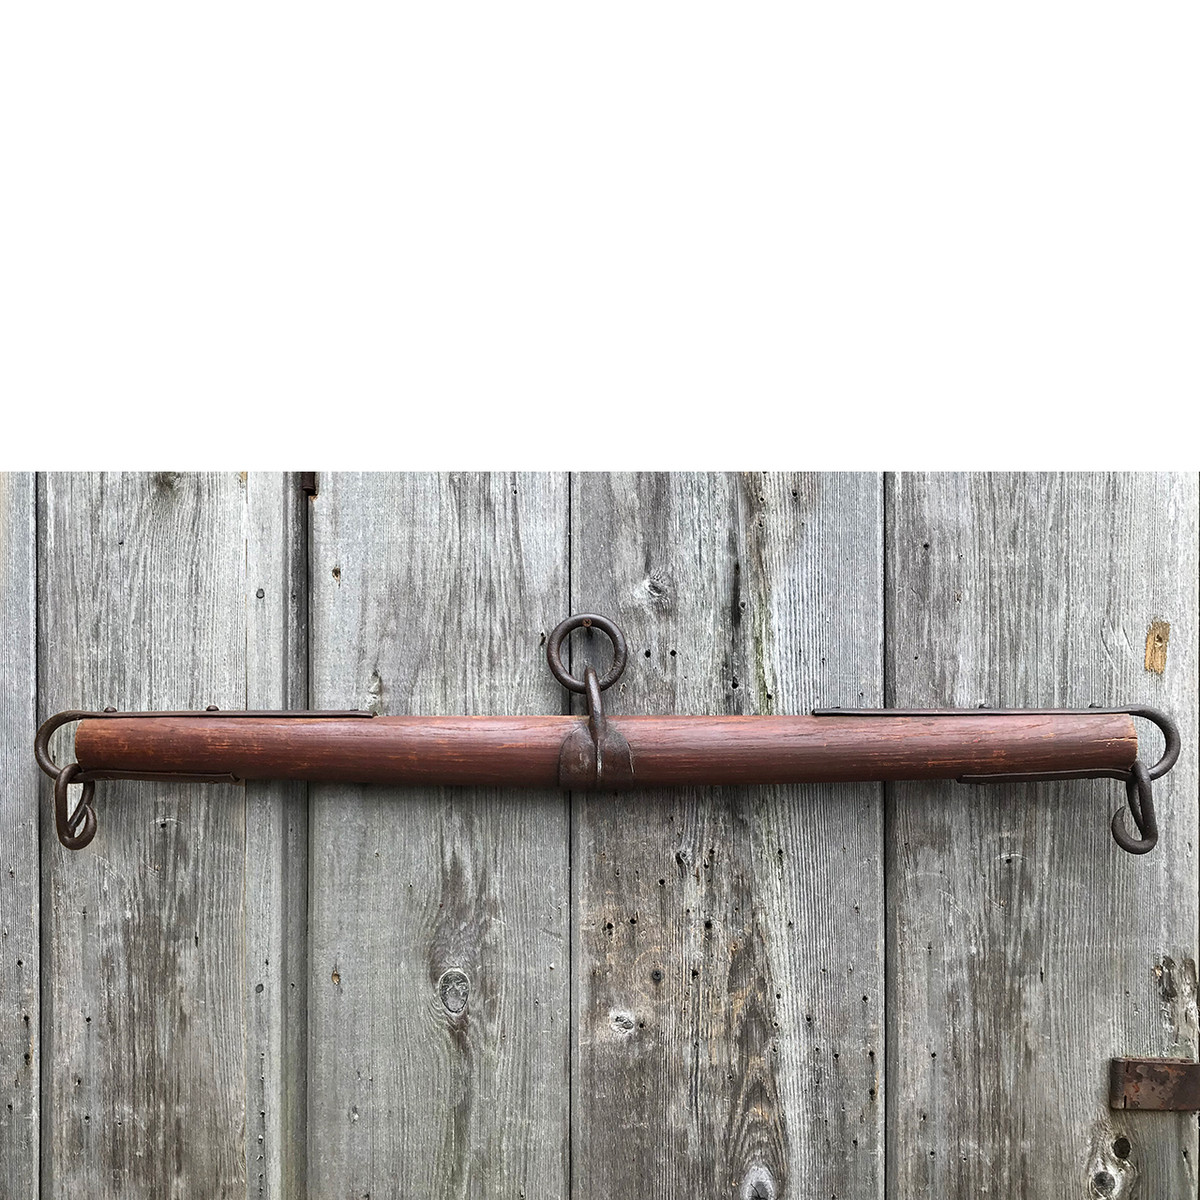 A18021 - Antique Wood and Wrought Iron Whippletree